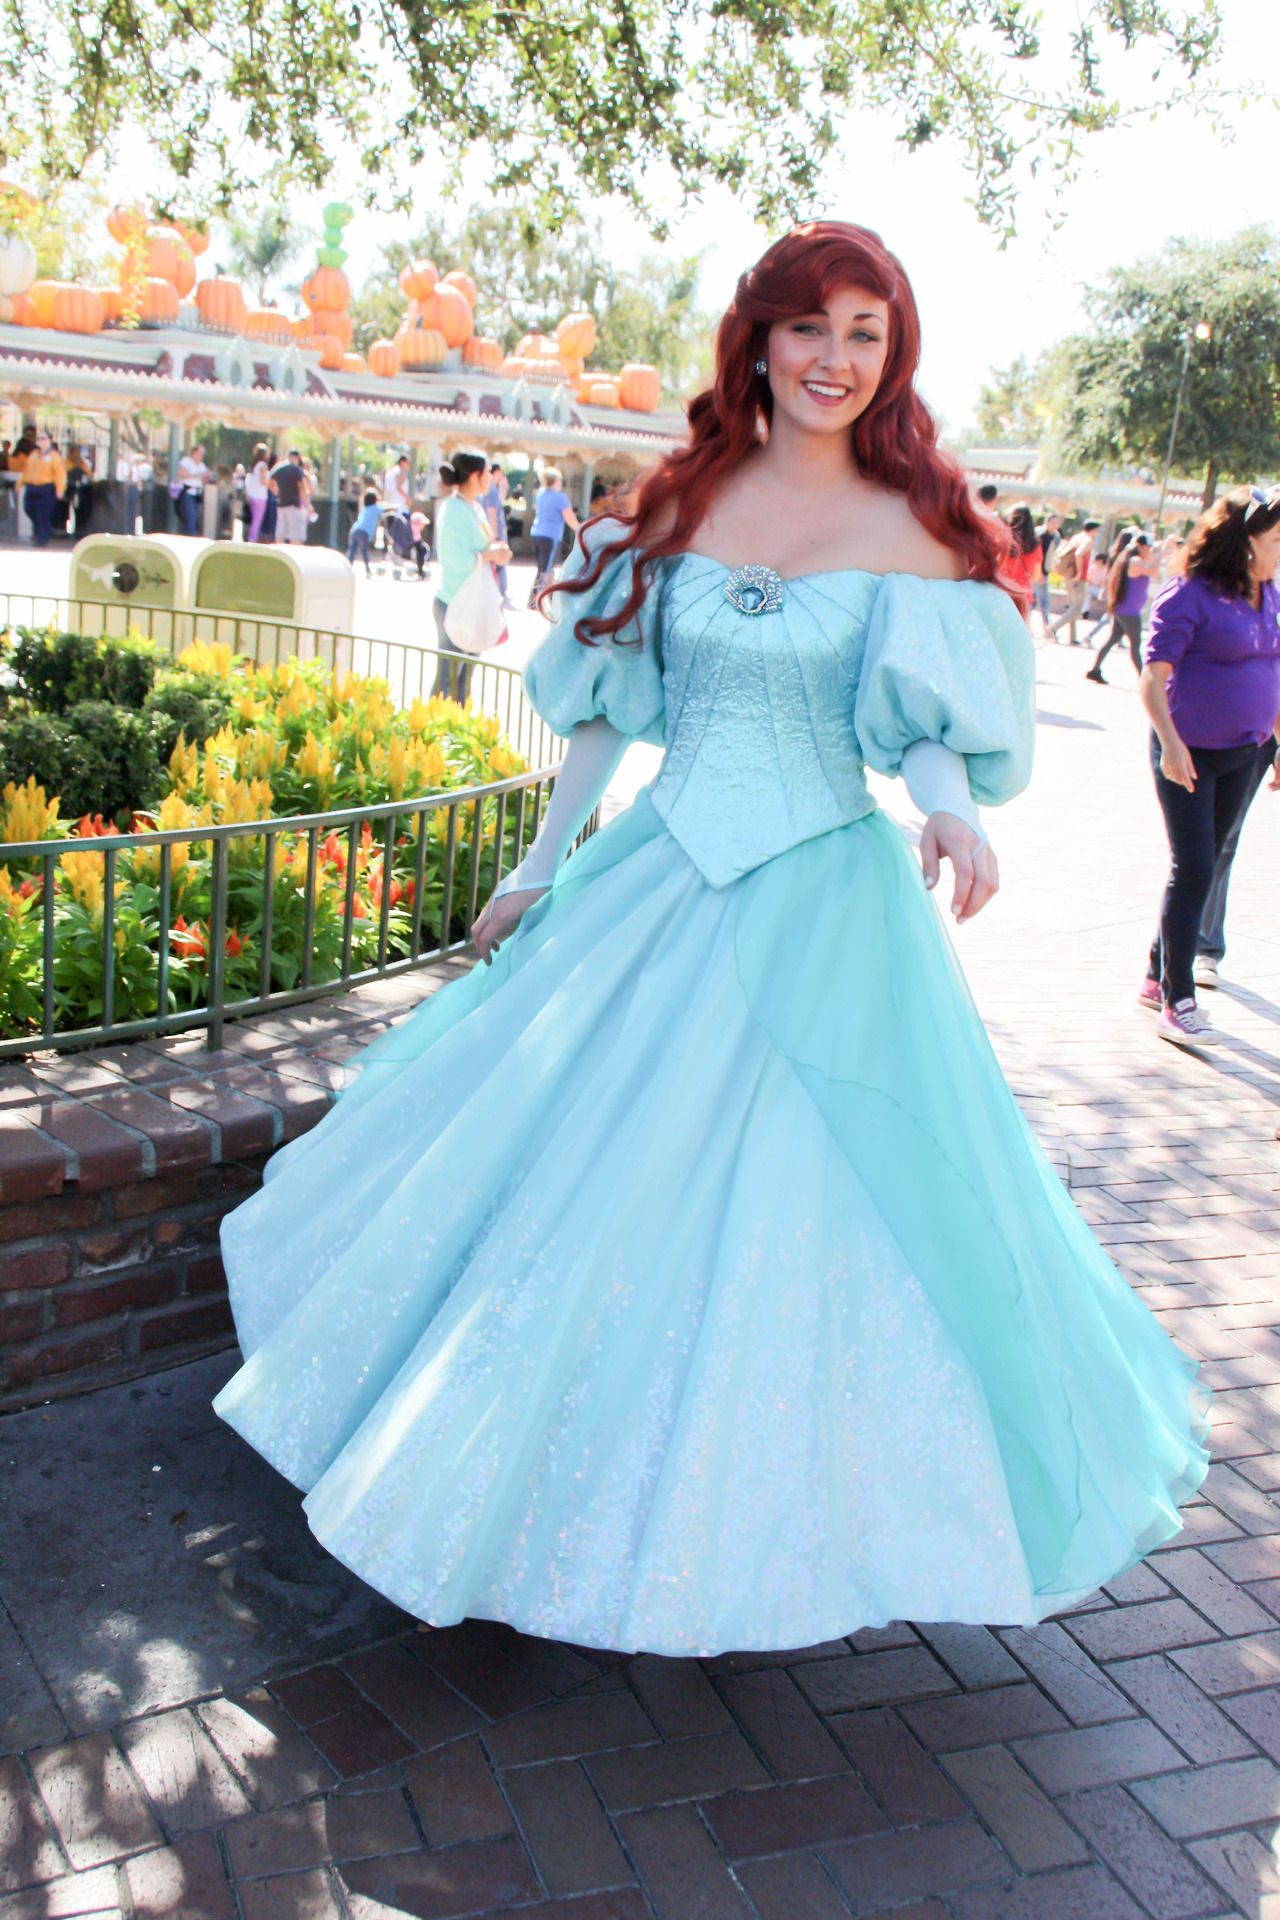 Ariel's new look. I met this actress last time I was there and loved her